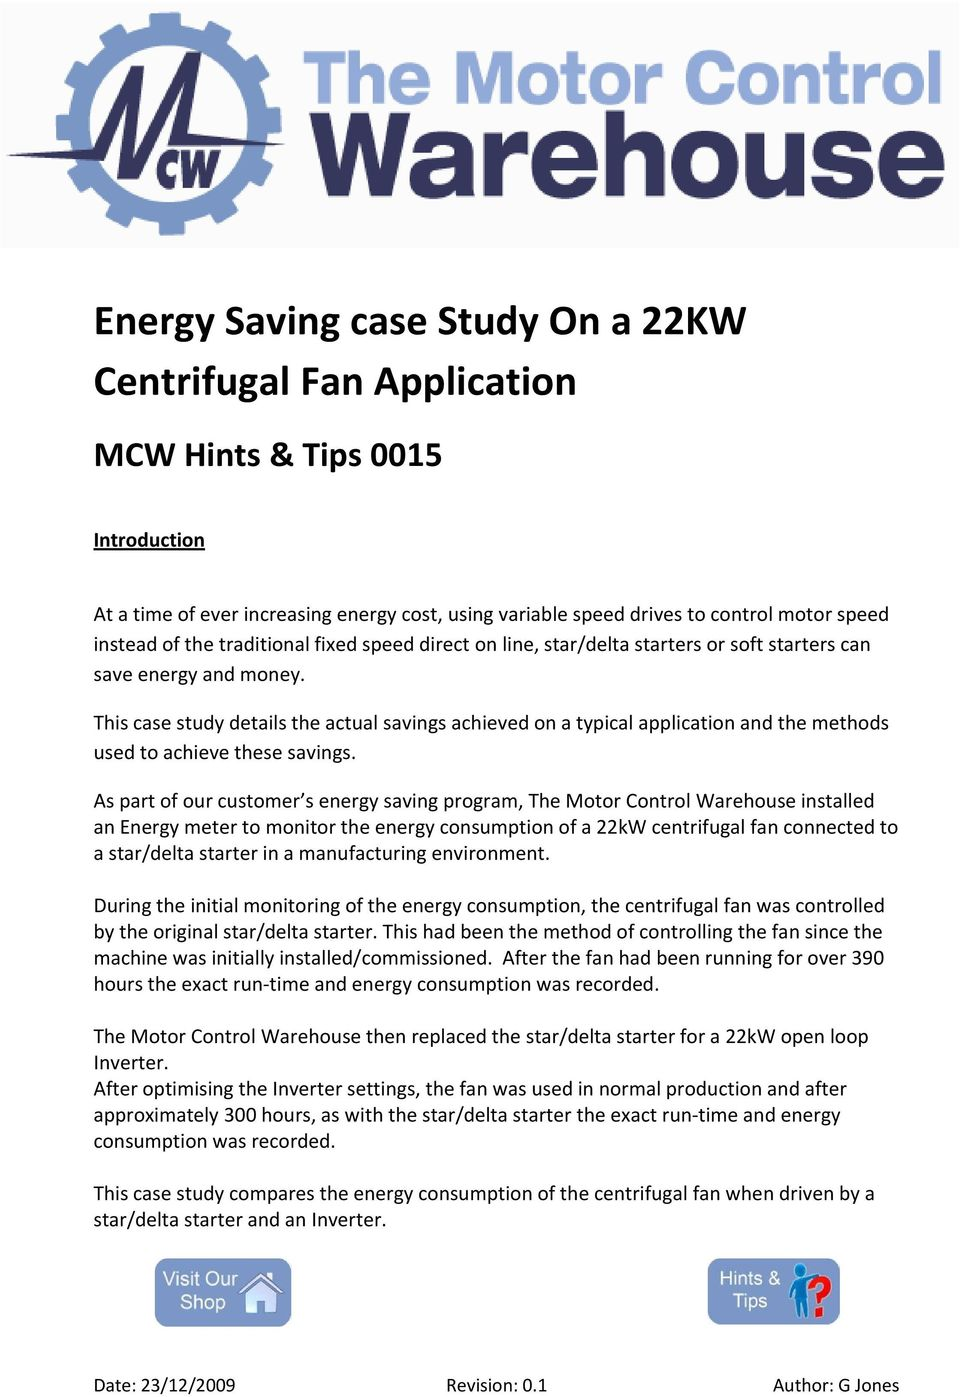 This case study details the actual savings achieved on a typical application and the methods used to achieve these savings.